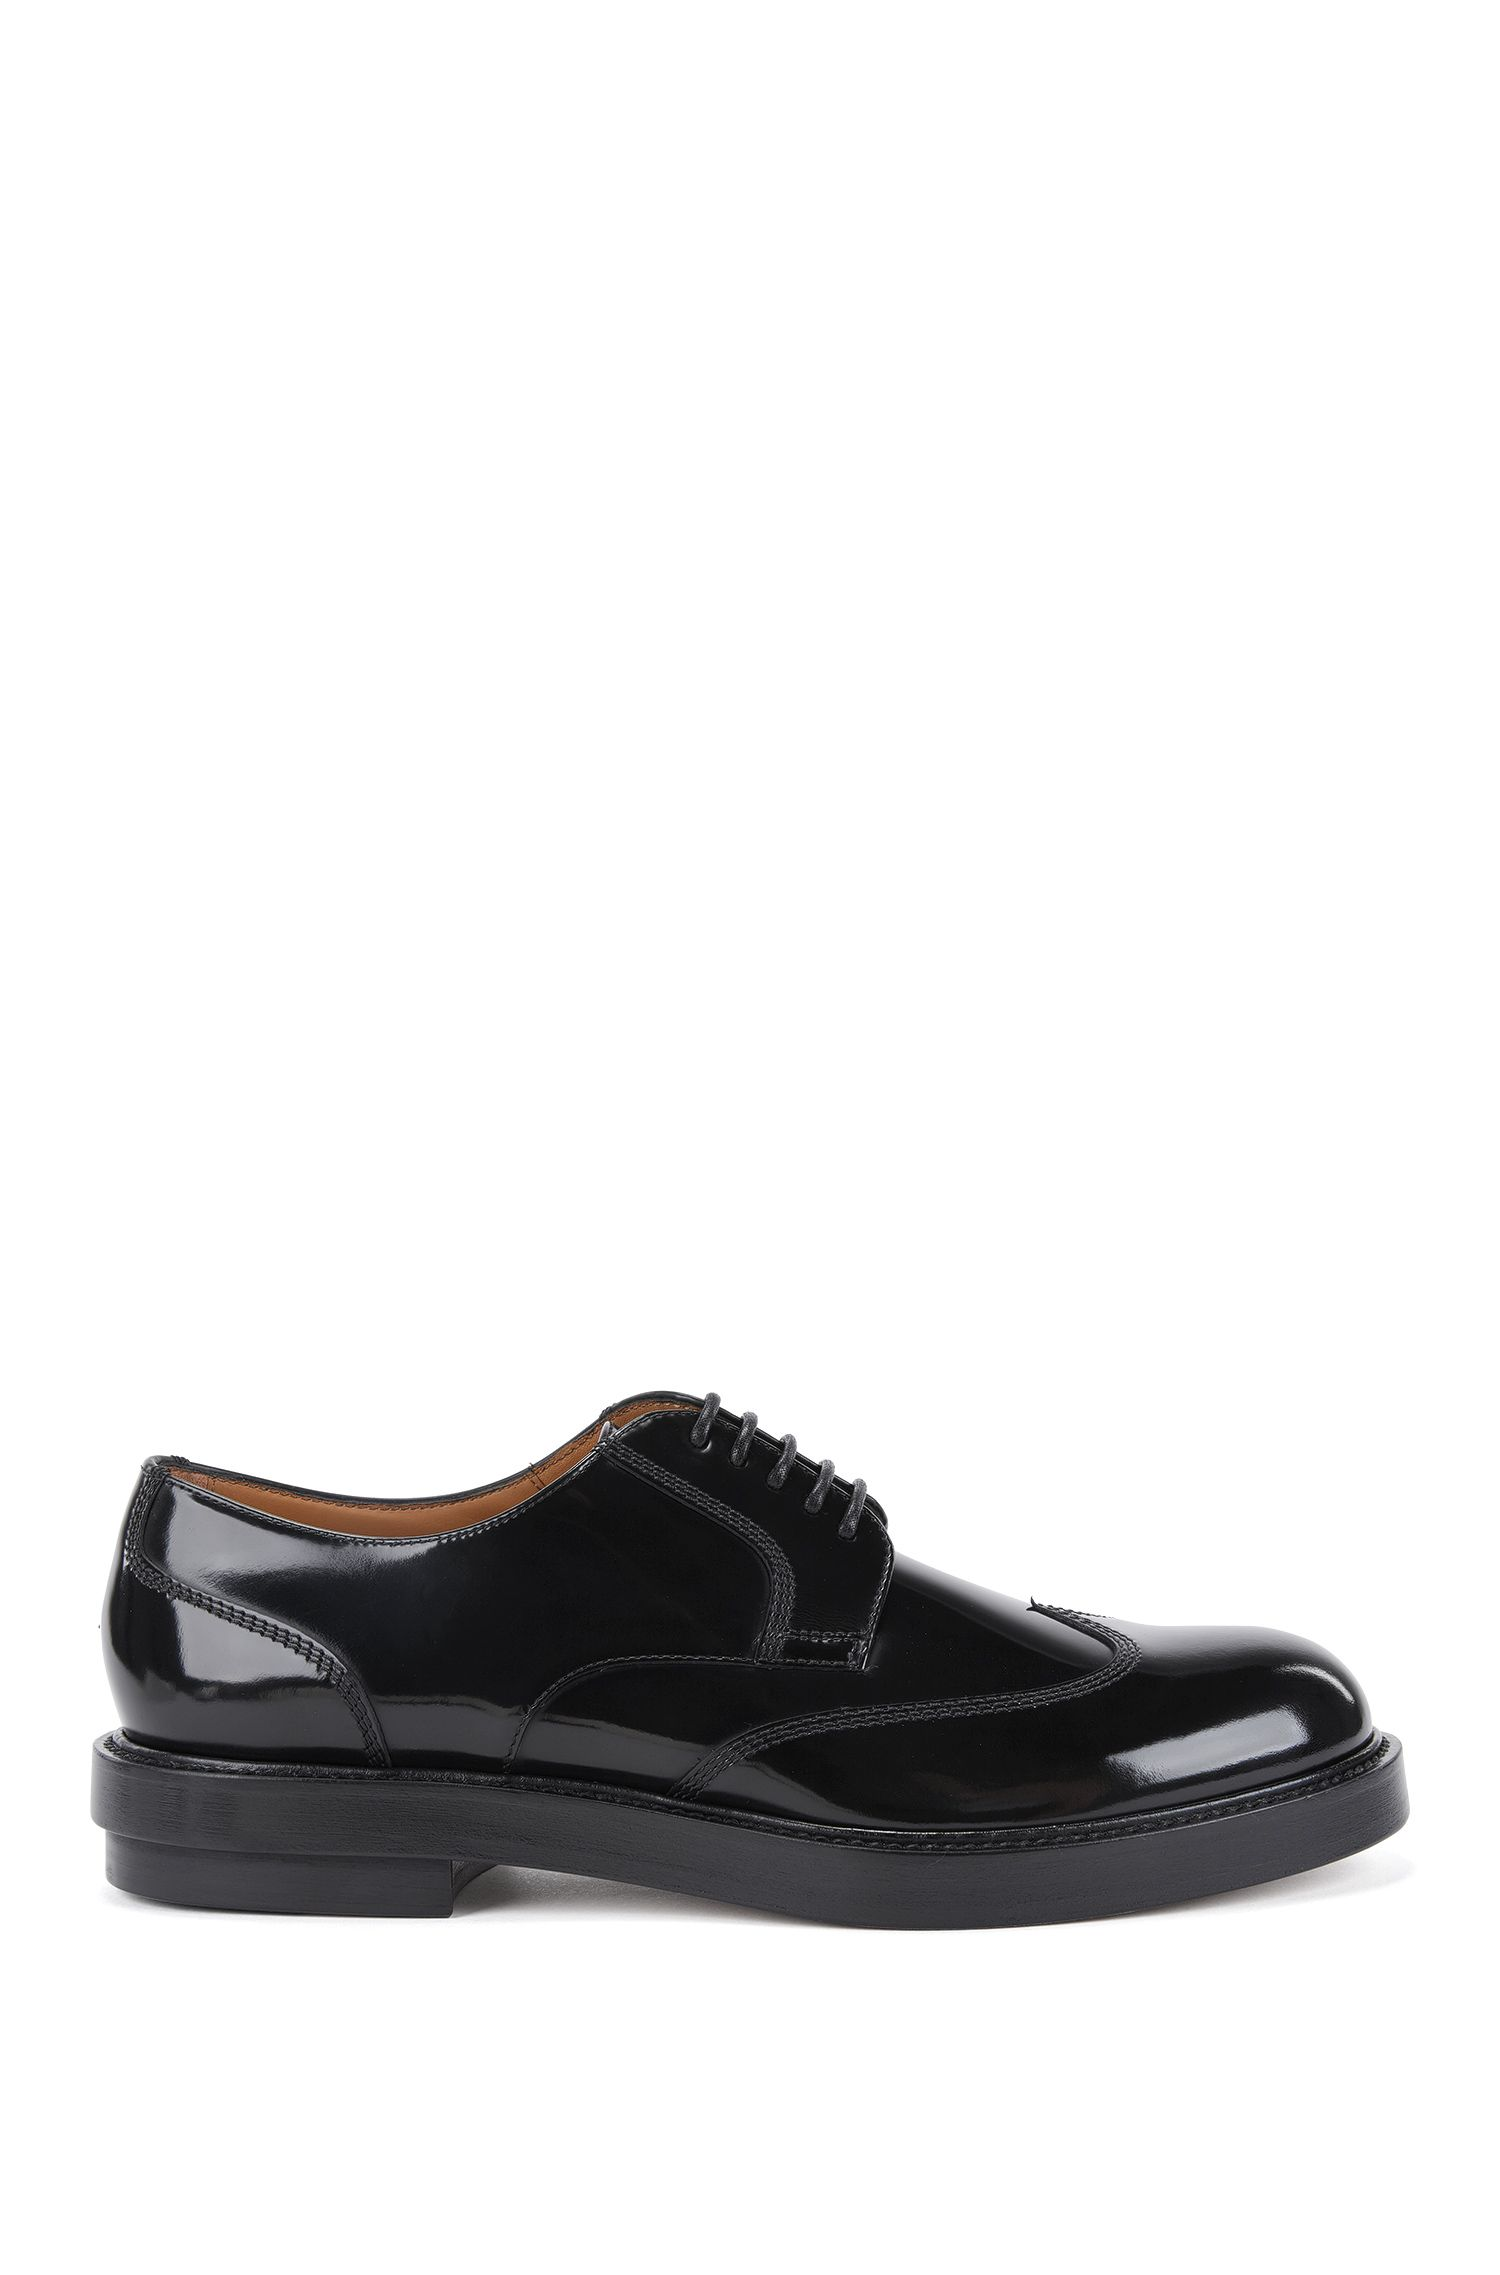 Wingtip Derby shoes in brush-off leather | 'Twister'